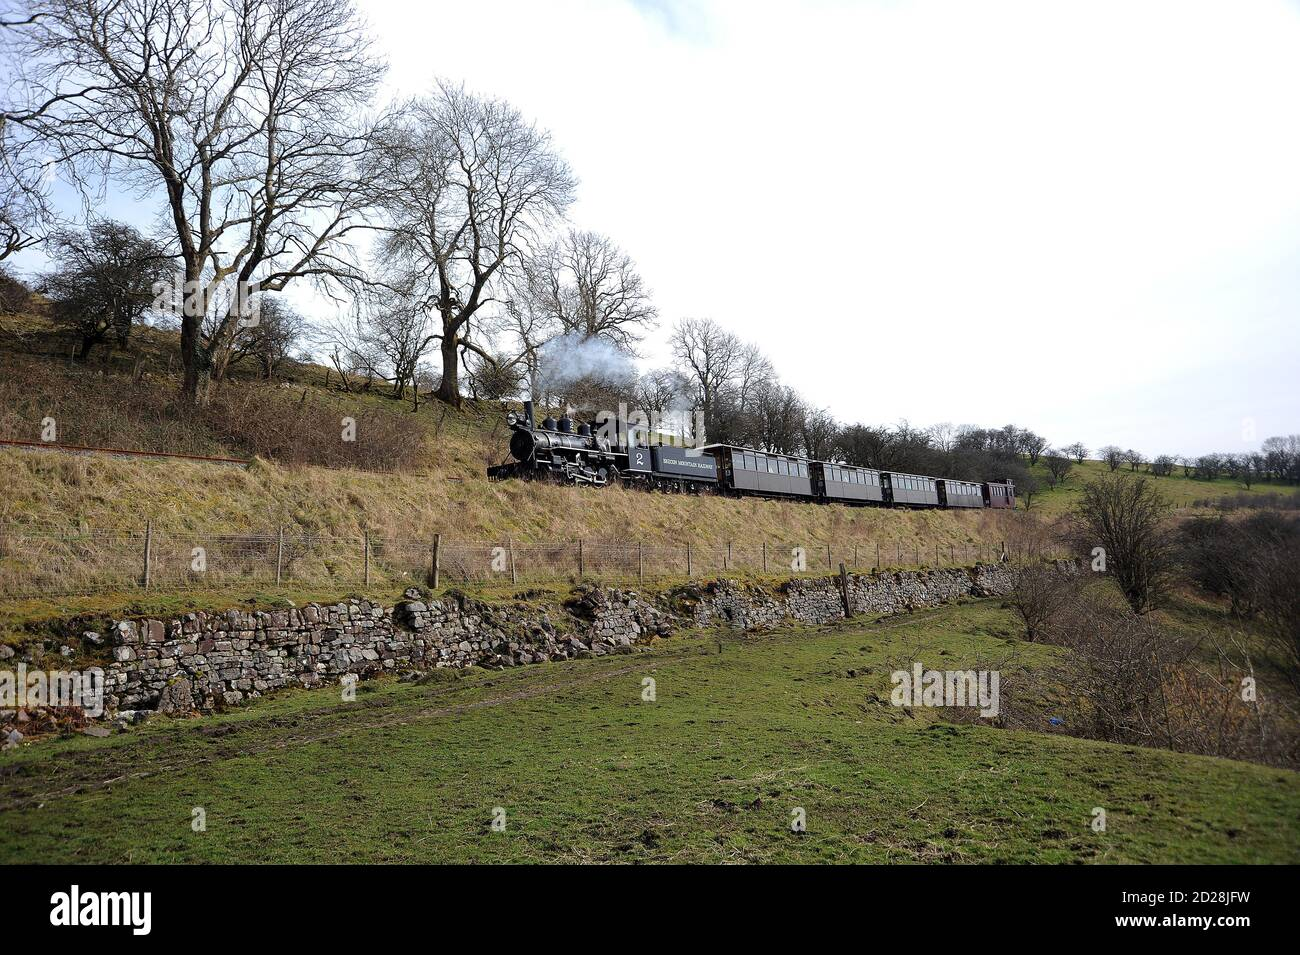 B.M.R. No. 2 passing Tyle Haidd Quarry with a train for Dolygaer. Stock Photo